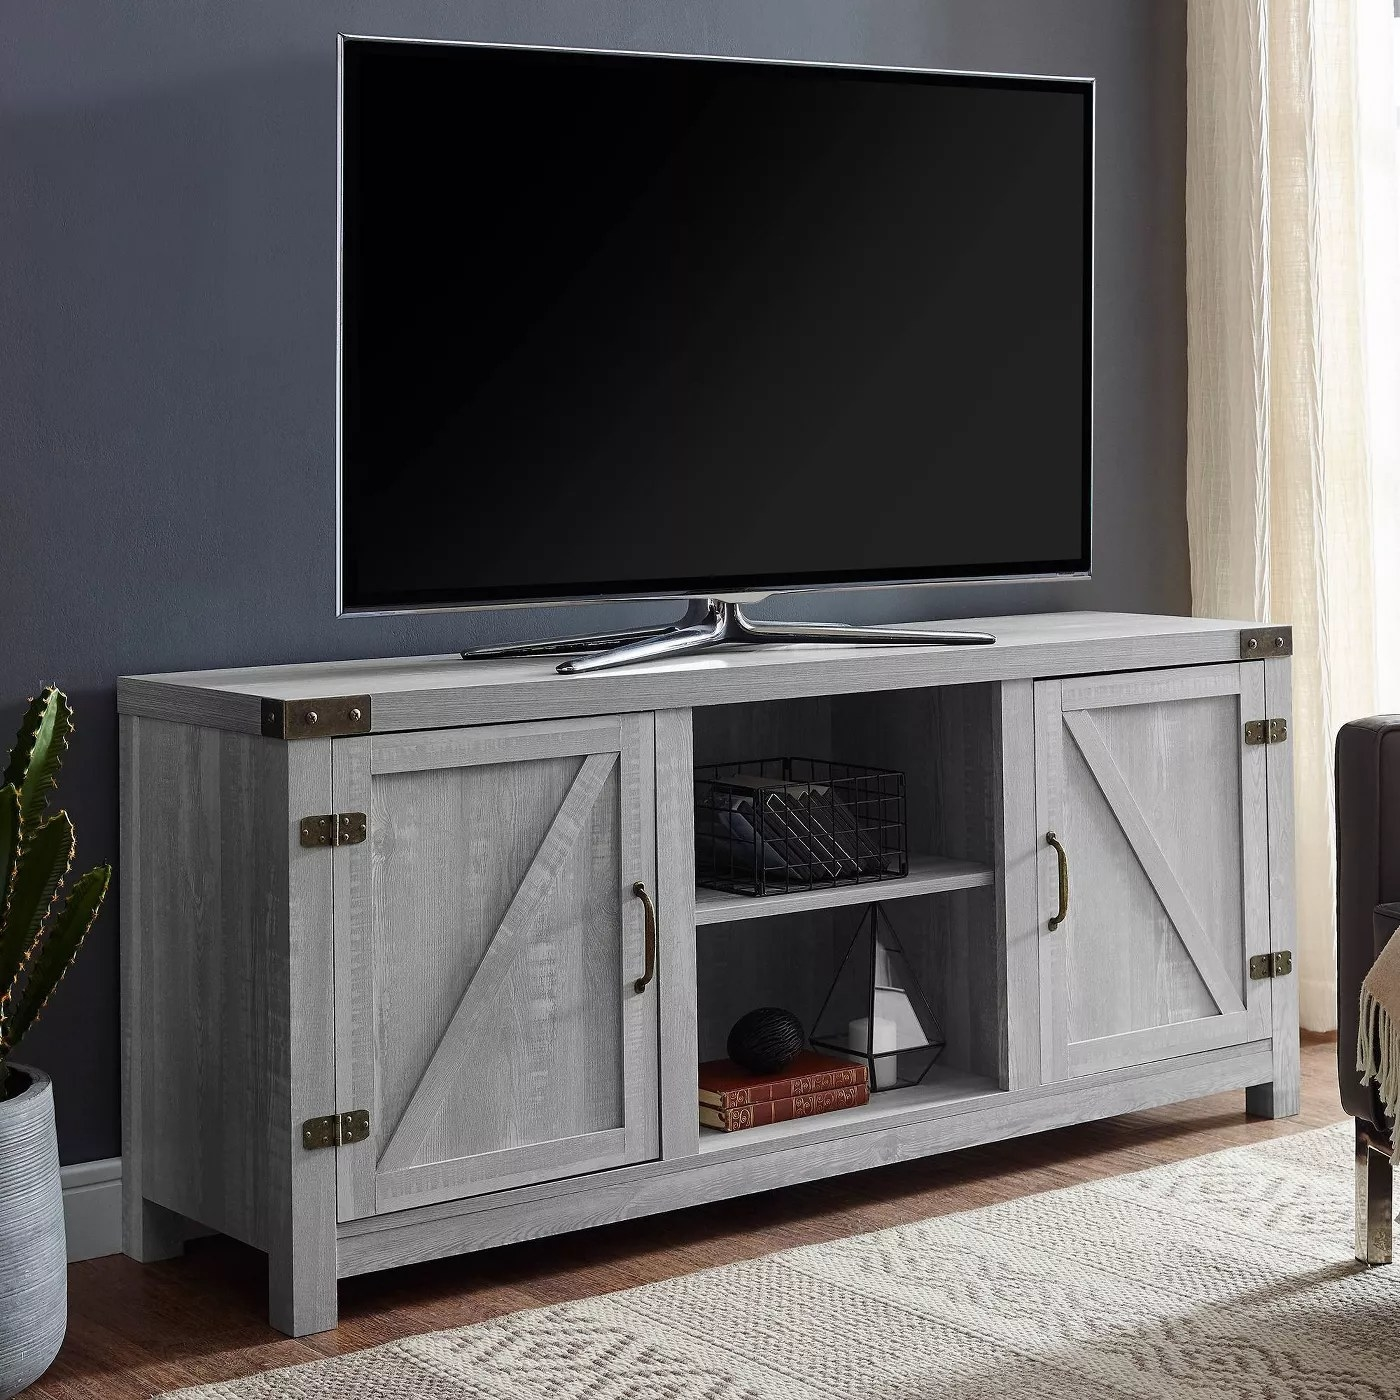 The farmhouse TV stand in gray